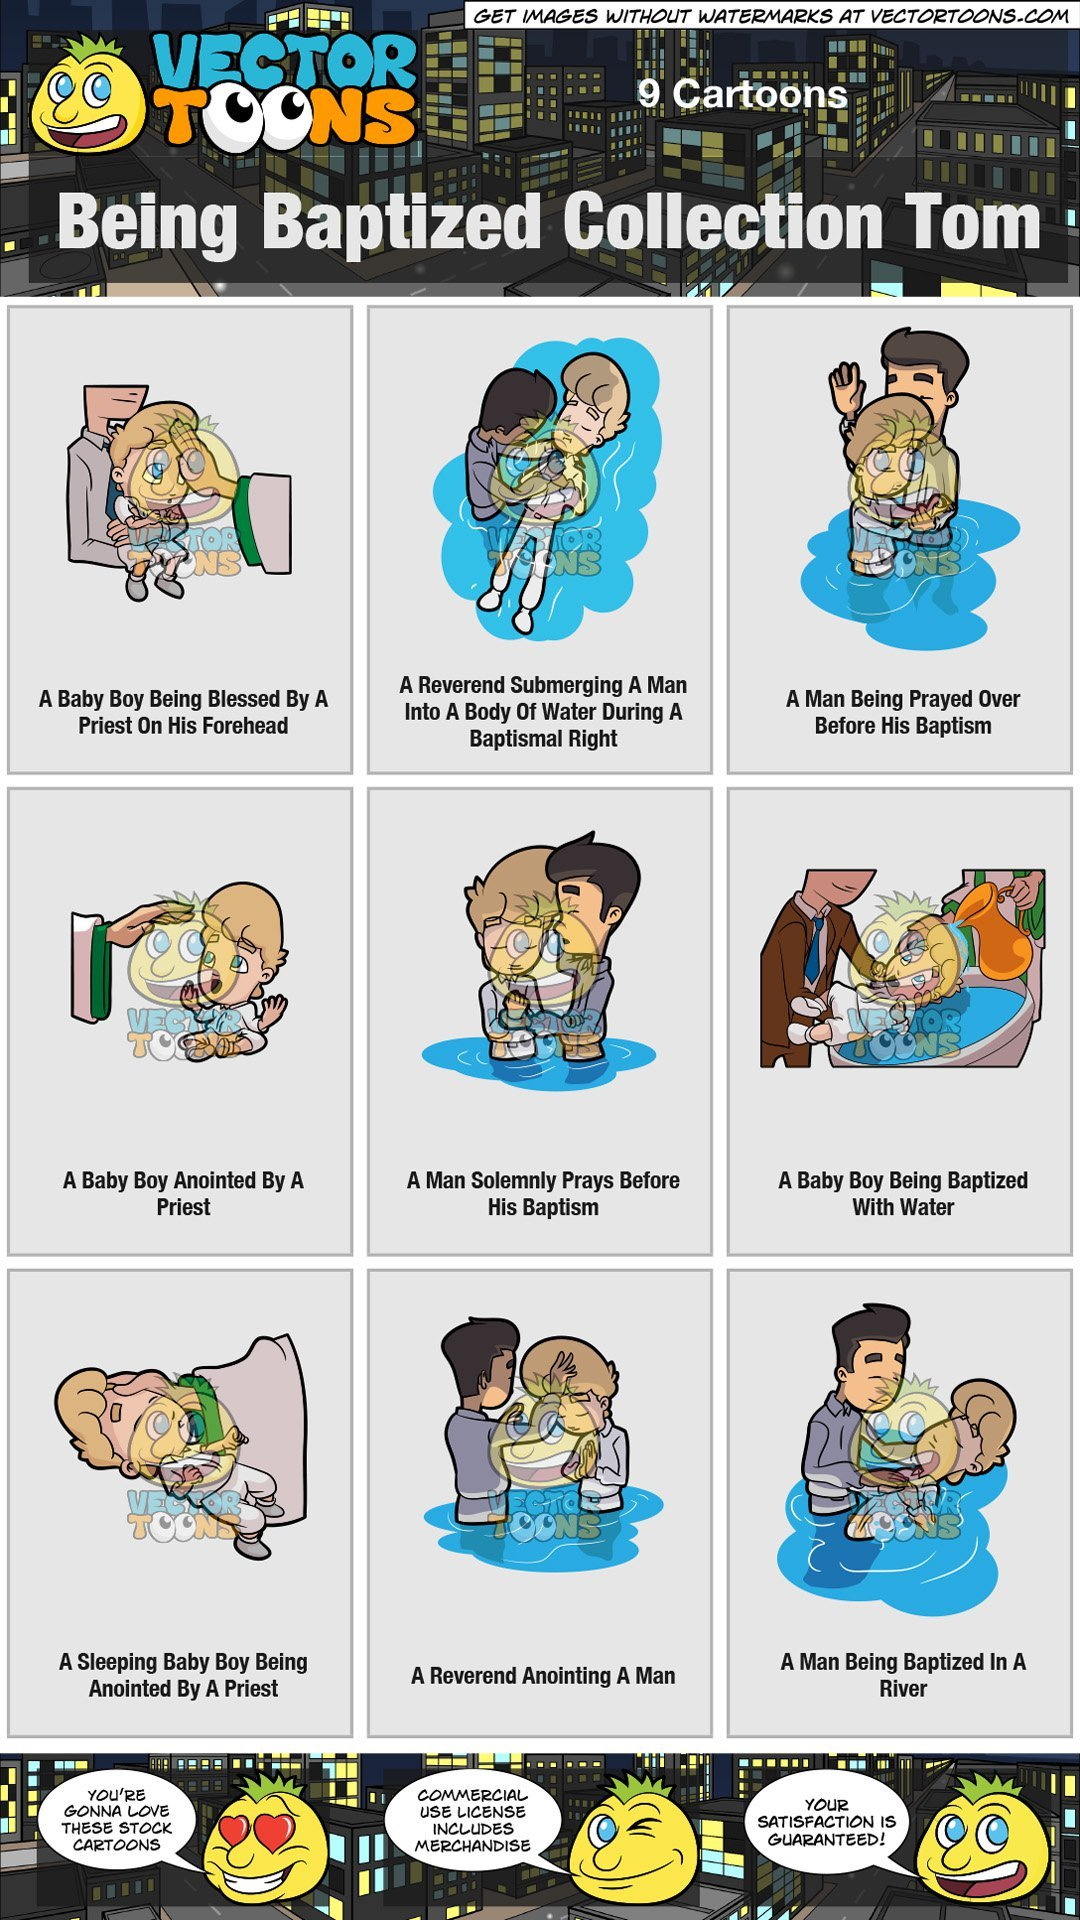 Baptism clipart river. Being baptized collection tom